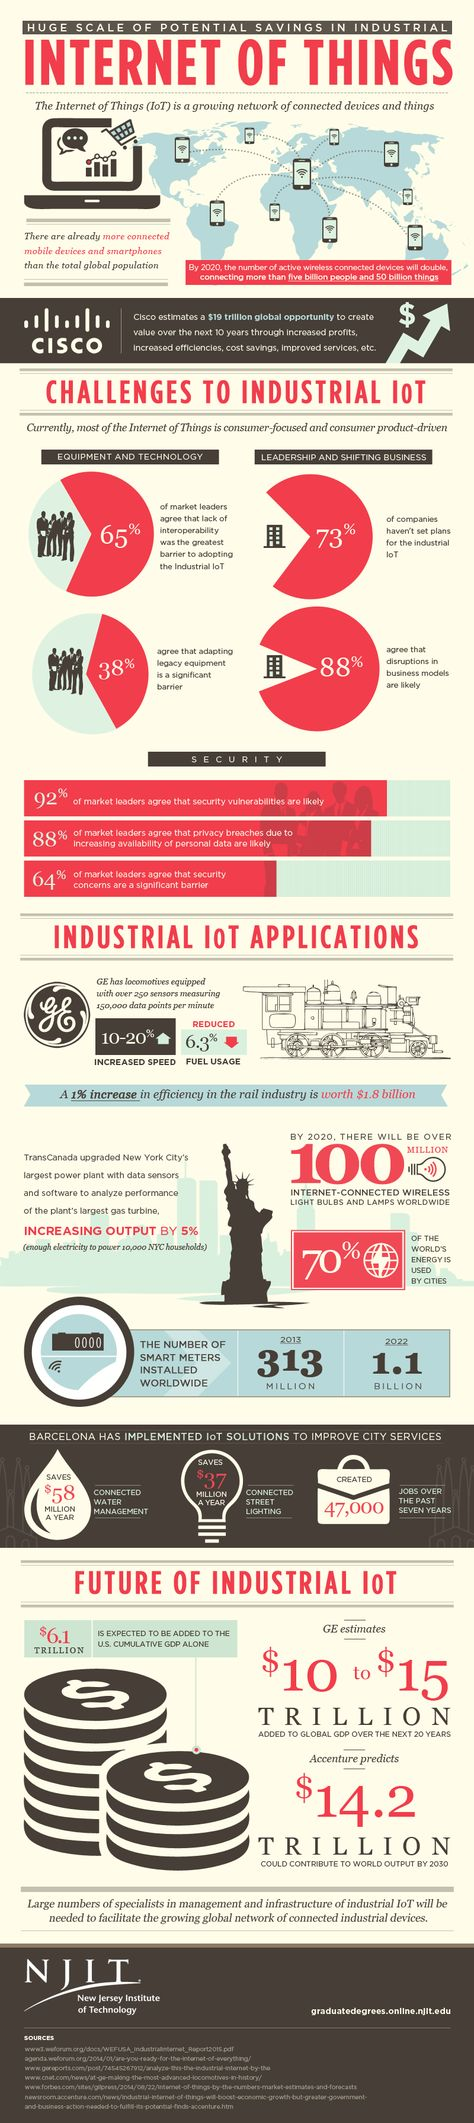 Huge Scale Of Potential Savings In Industrial: Internet Of Things #Infographic #Internet #IOT